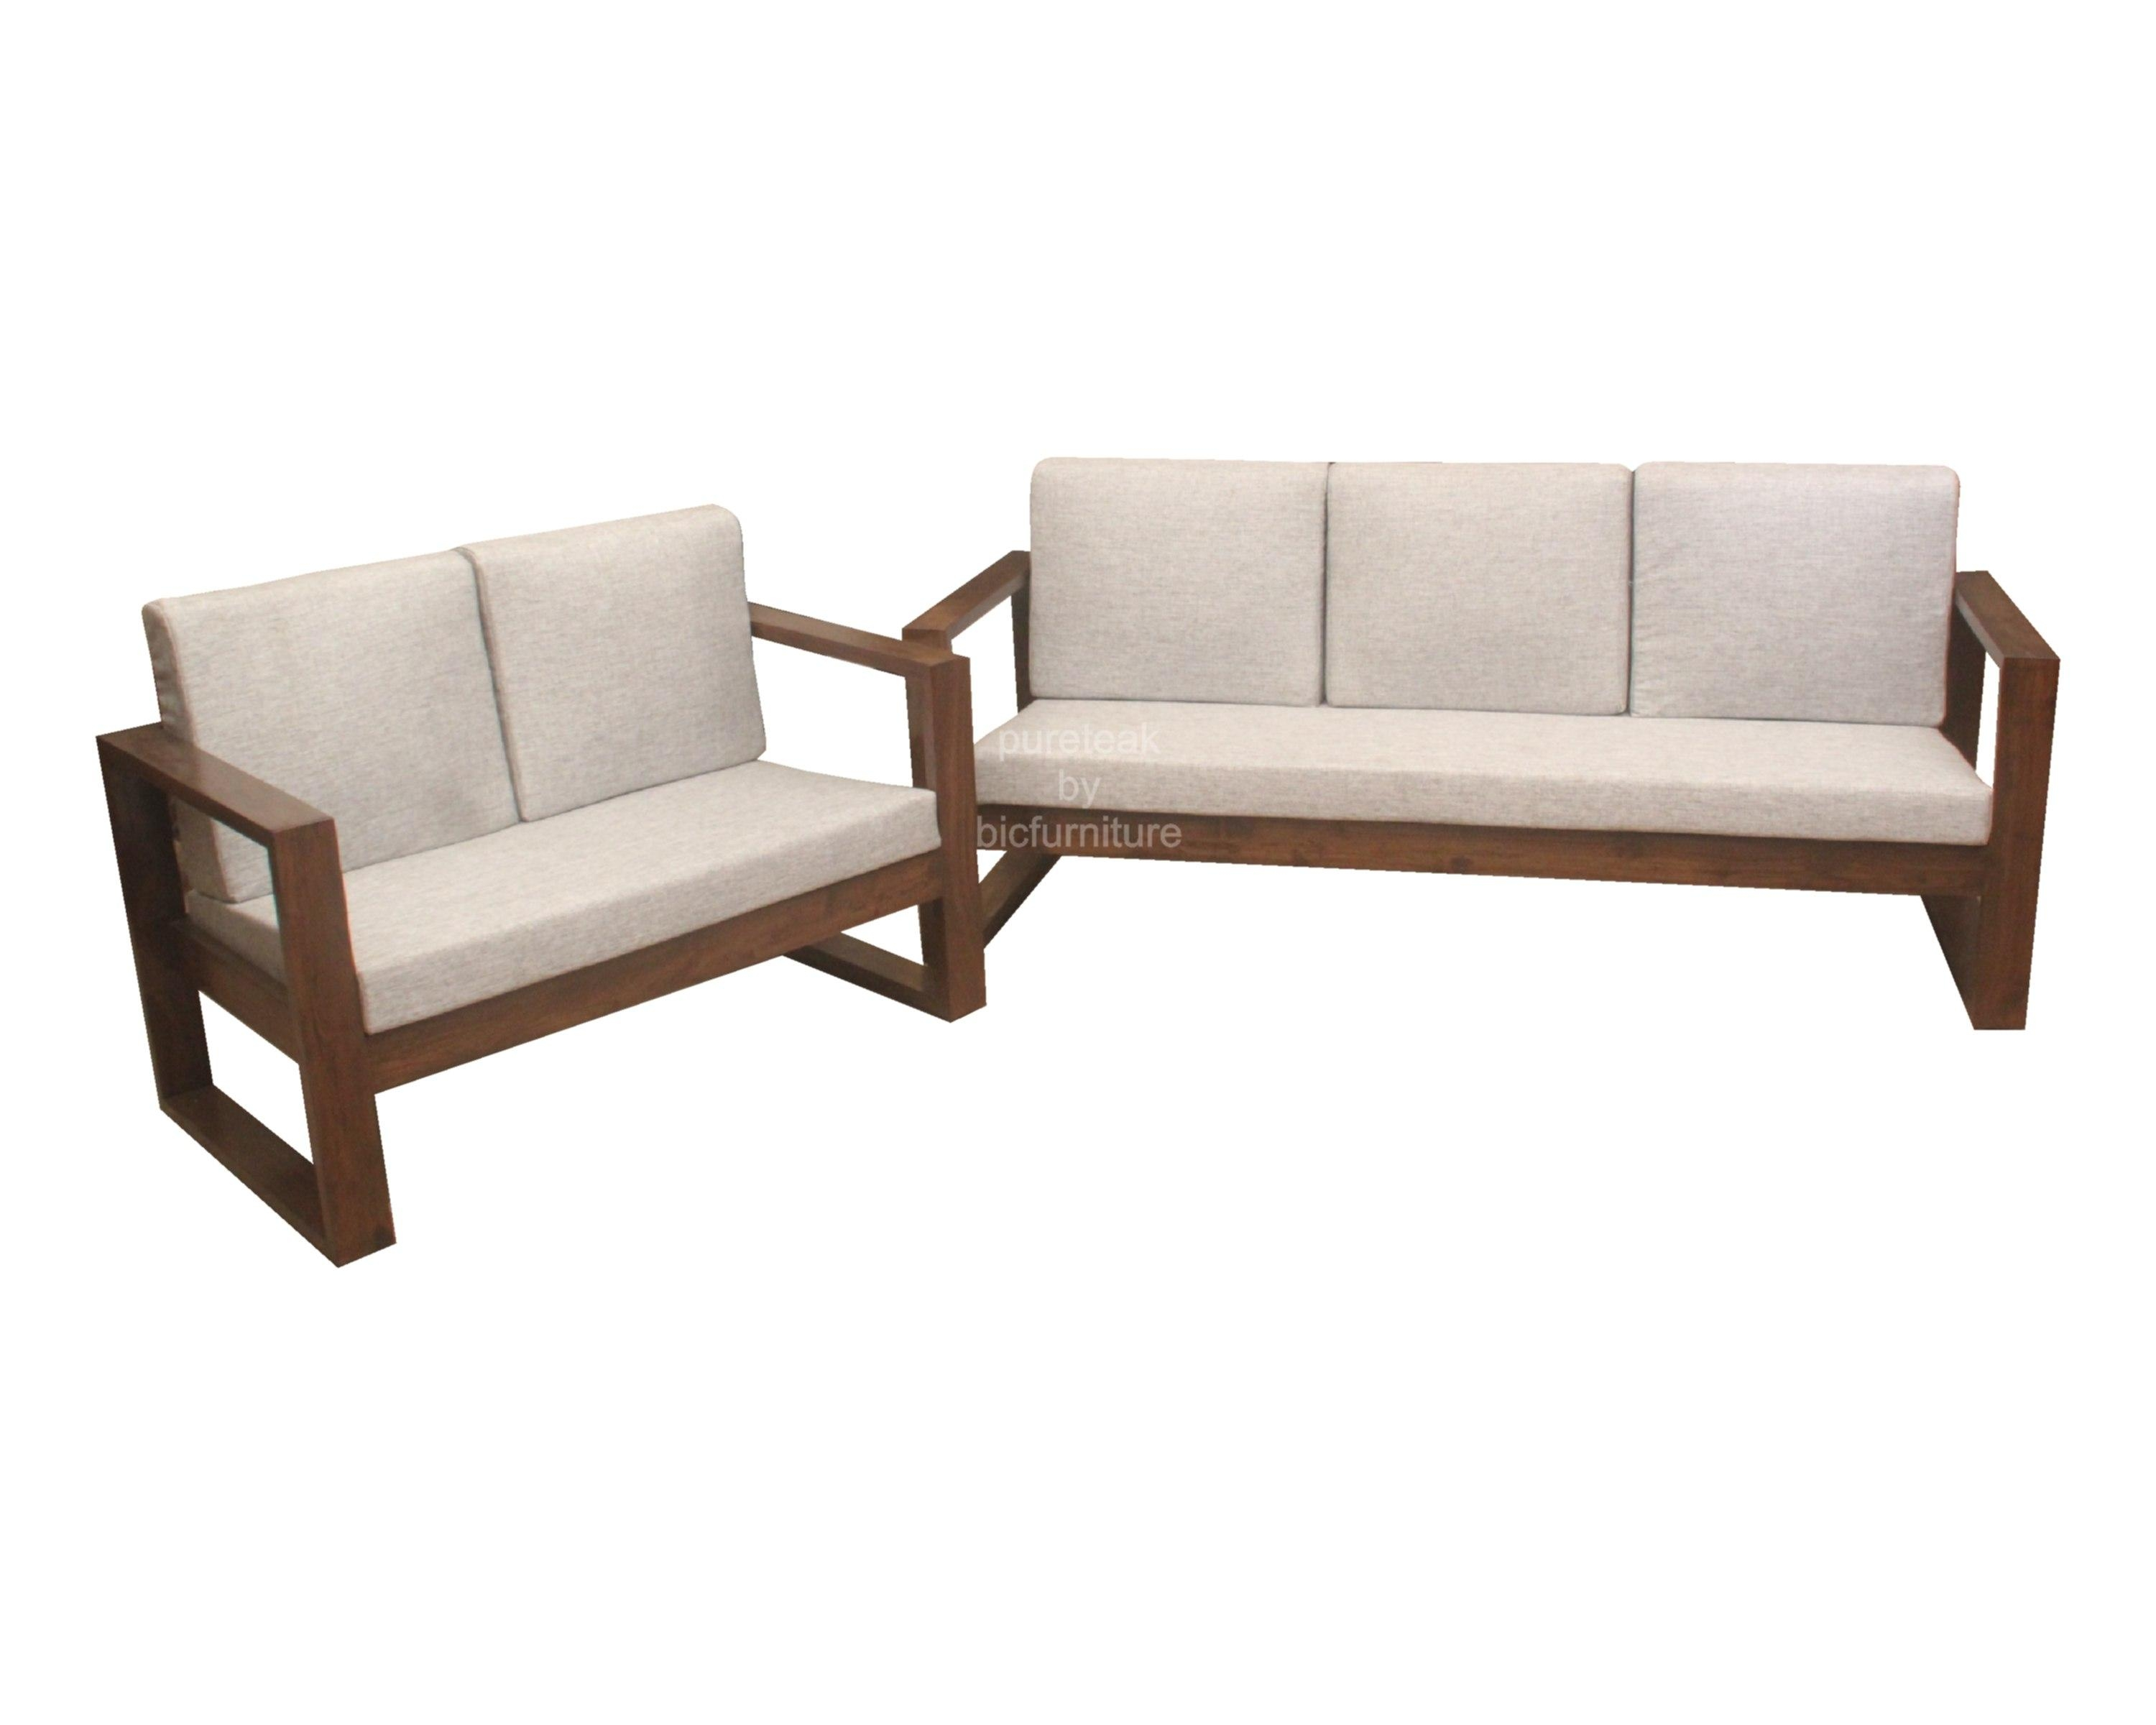 Simple Sofas Brown Wooden White Sofa Offers E